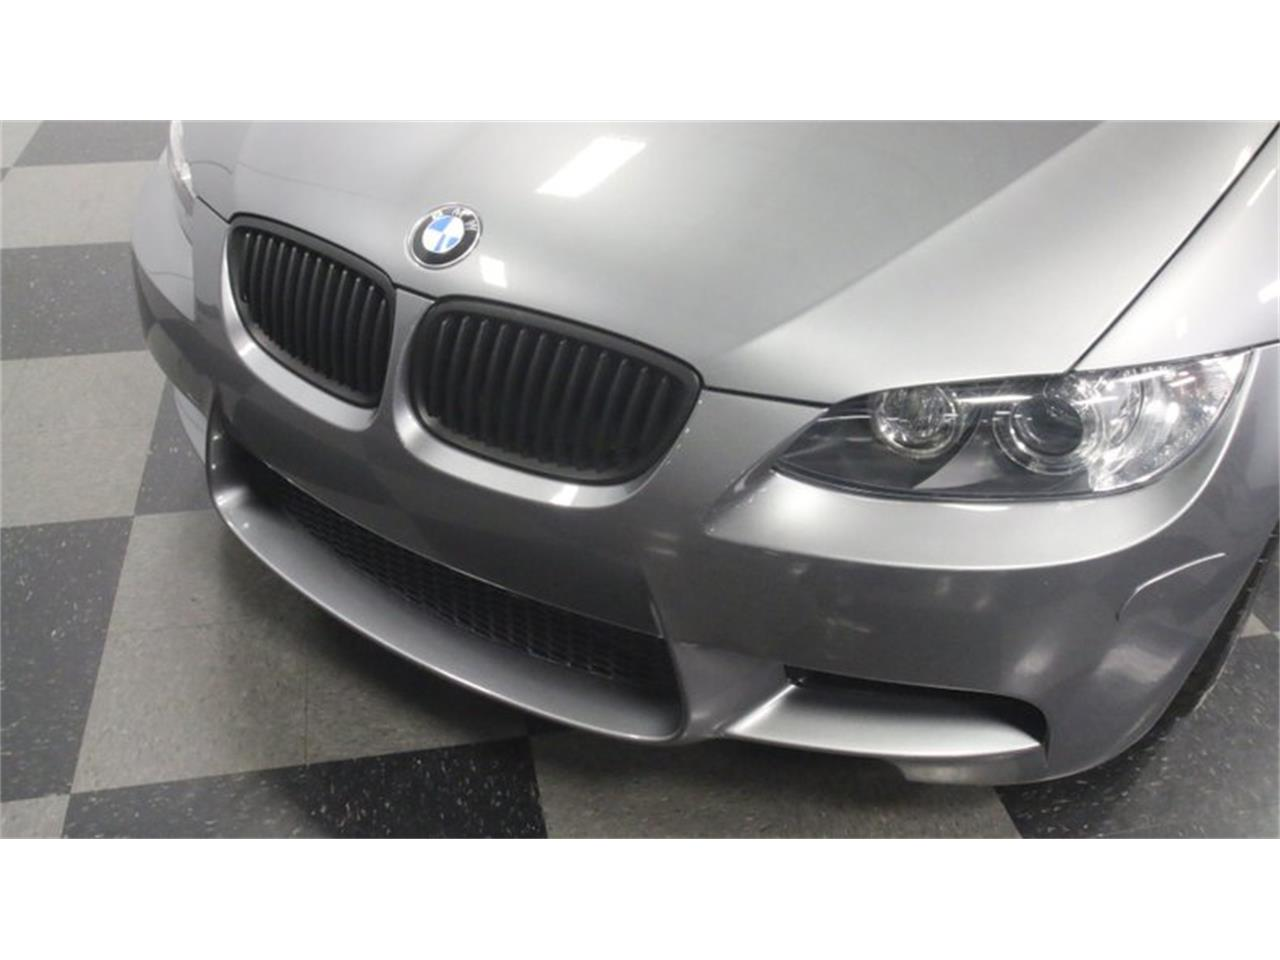 2010 BMW M3 for sale in Lithia Springs, GA – photo 22